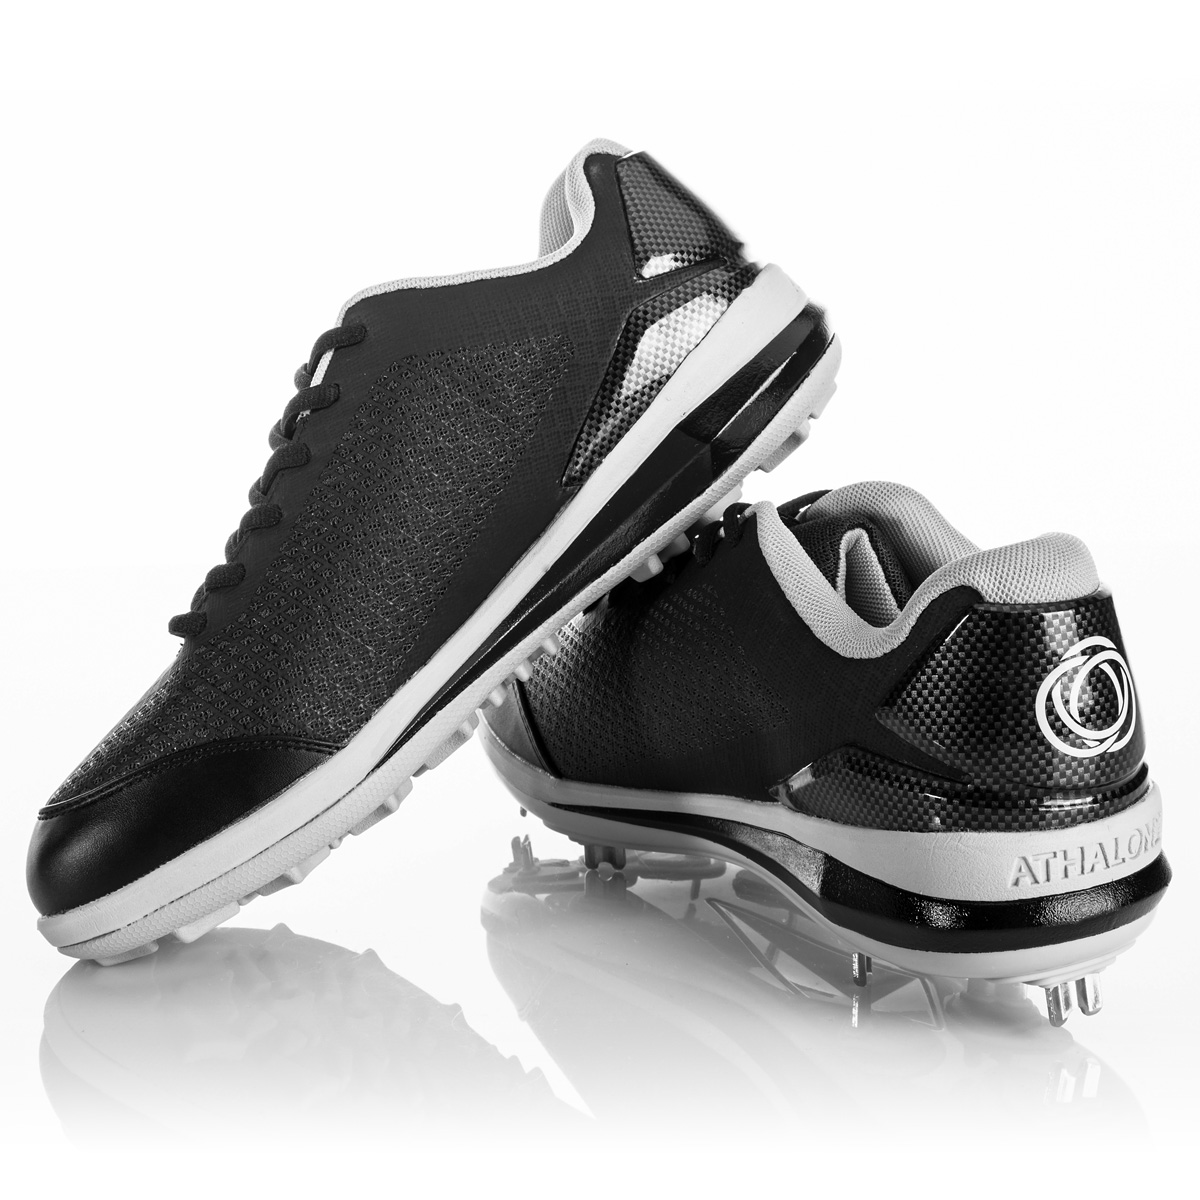 Athalonz: A Revolution In Baseball Shoes